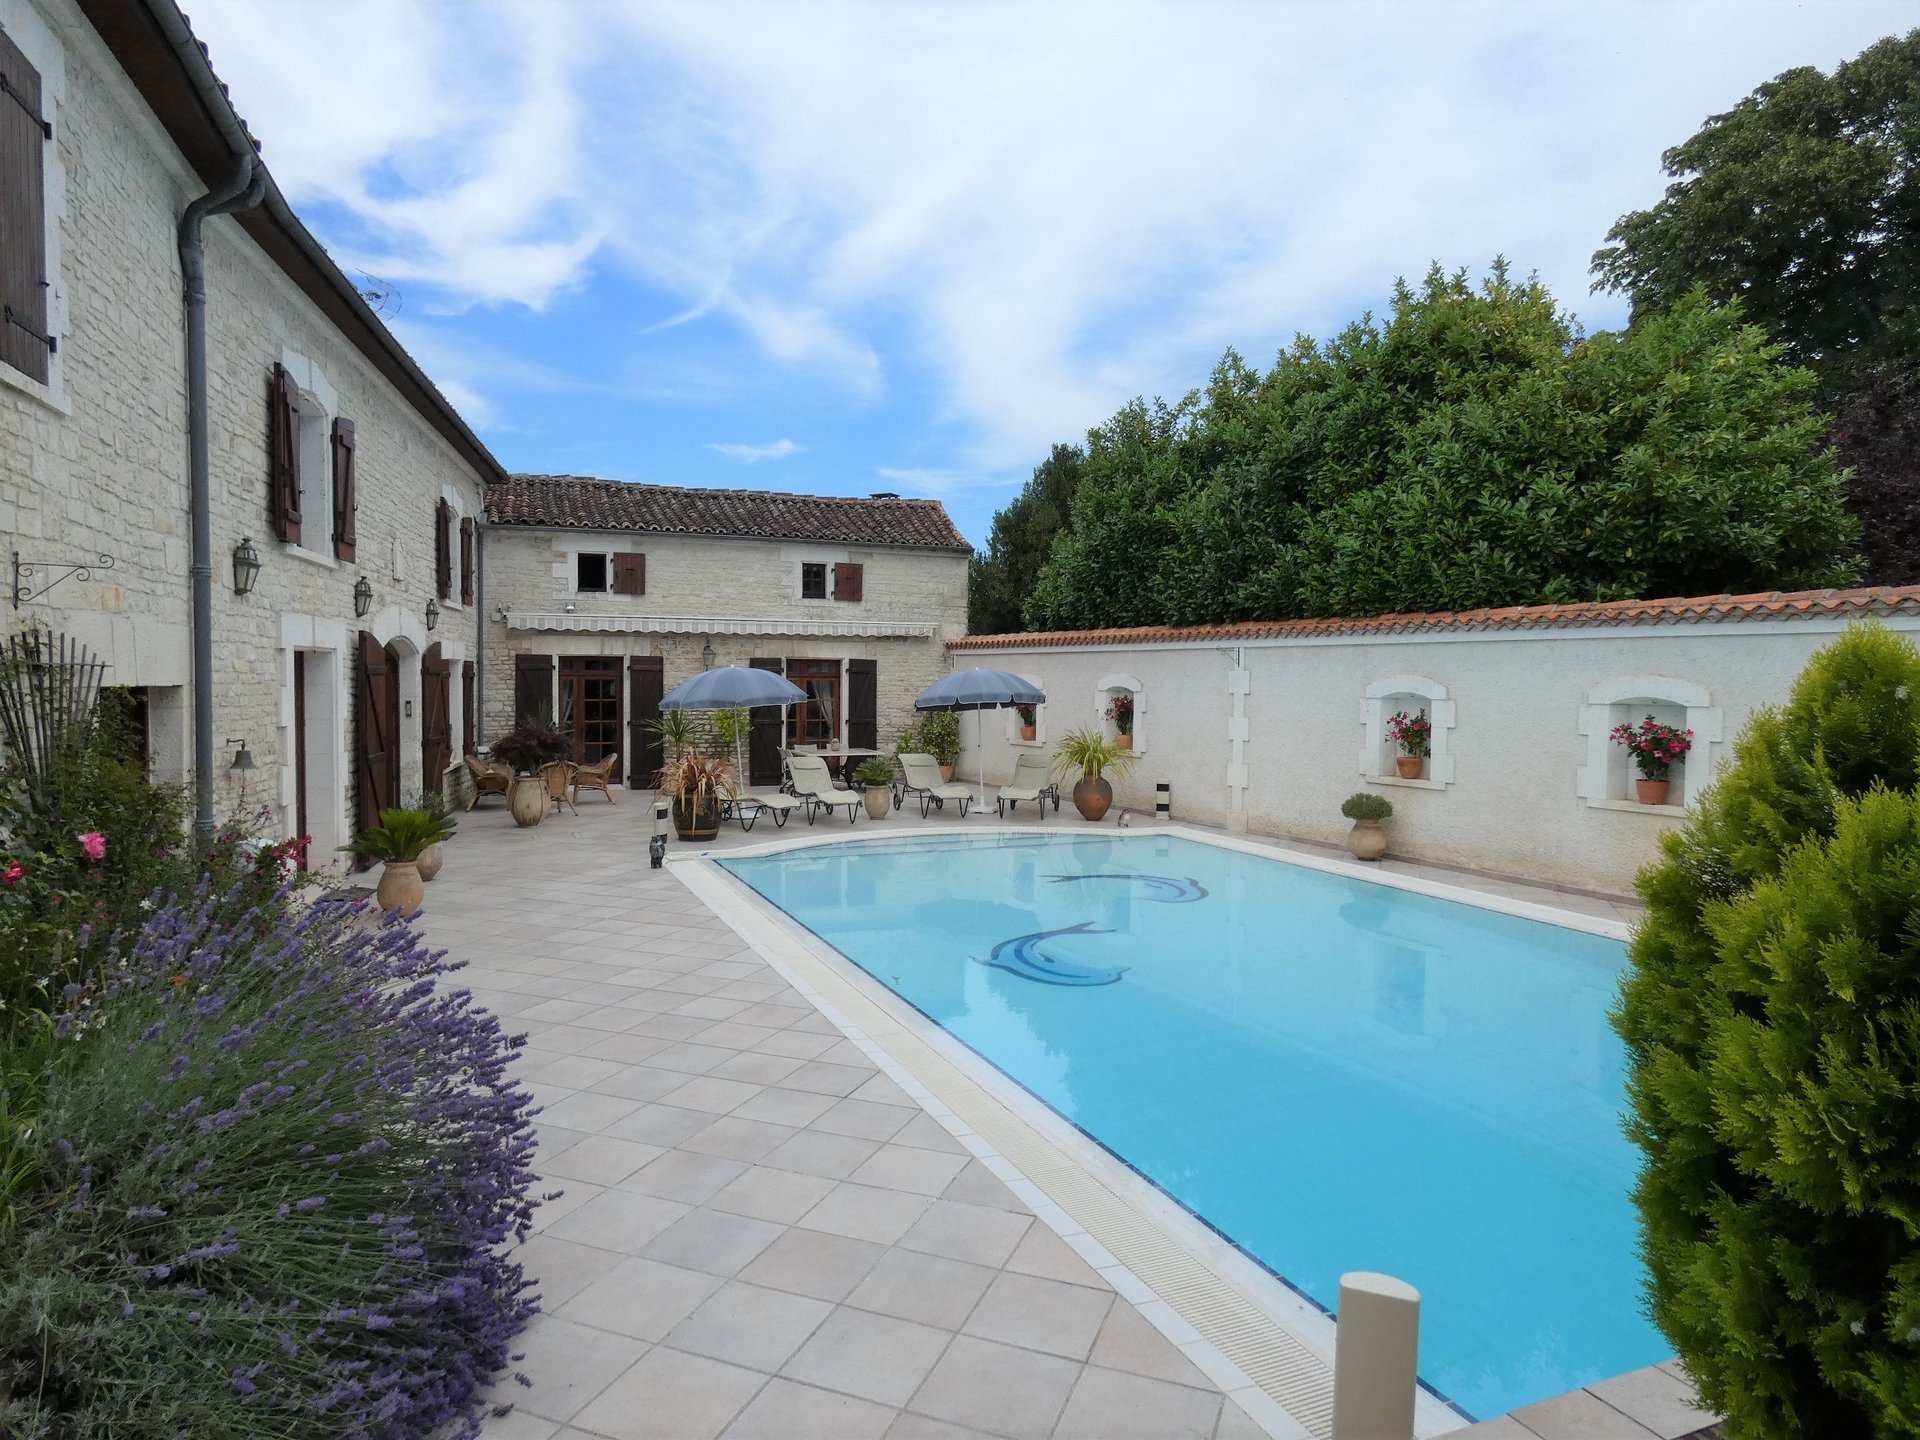 House of character with Gite and swimming pool